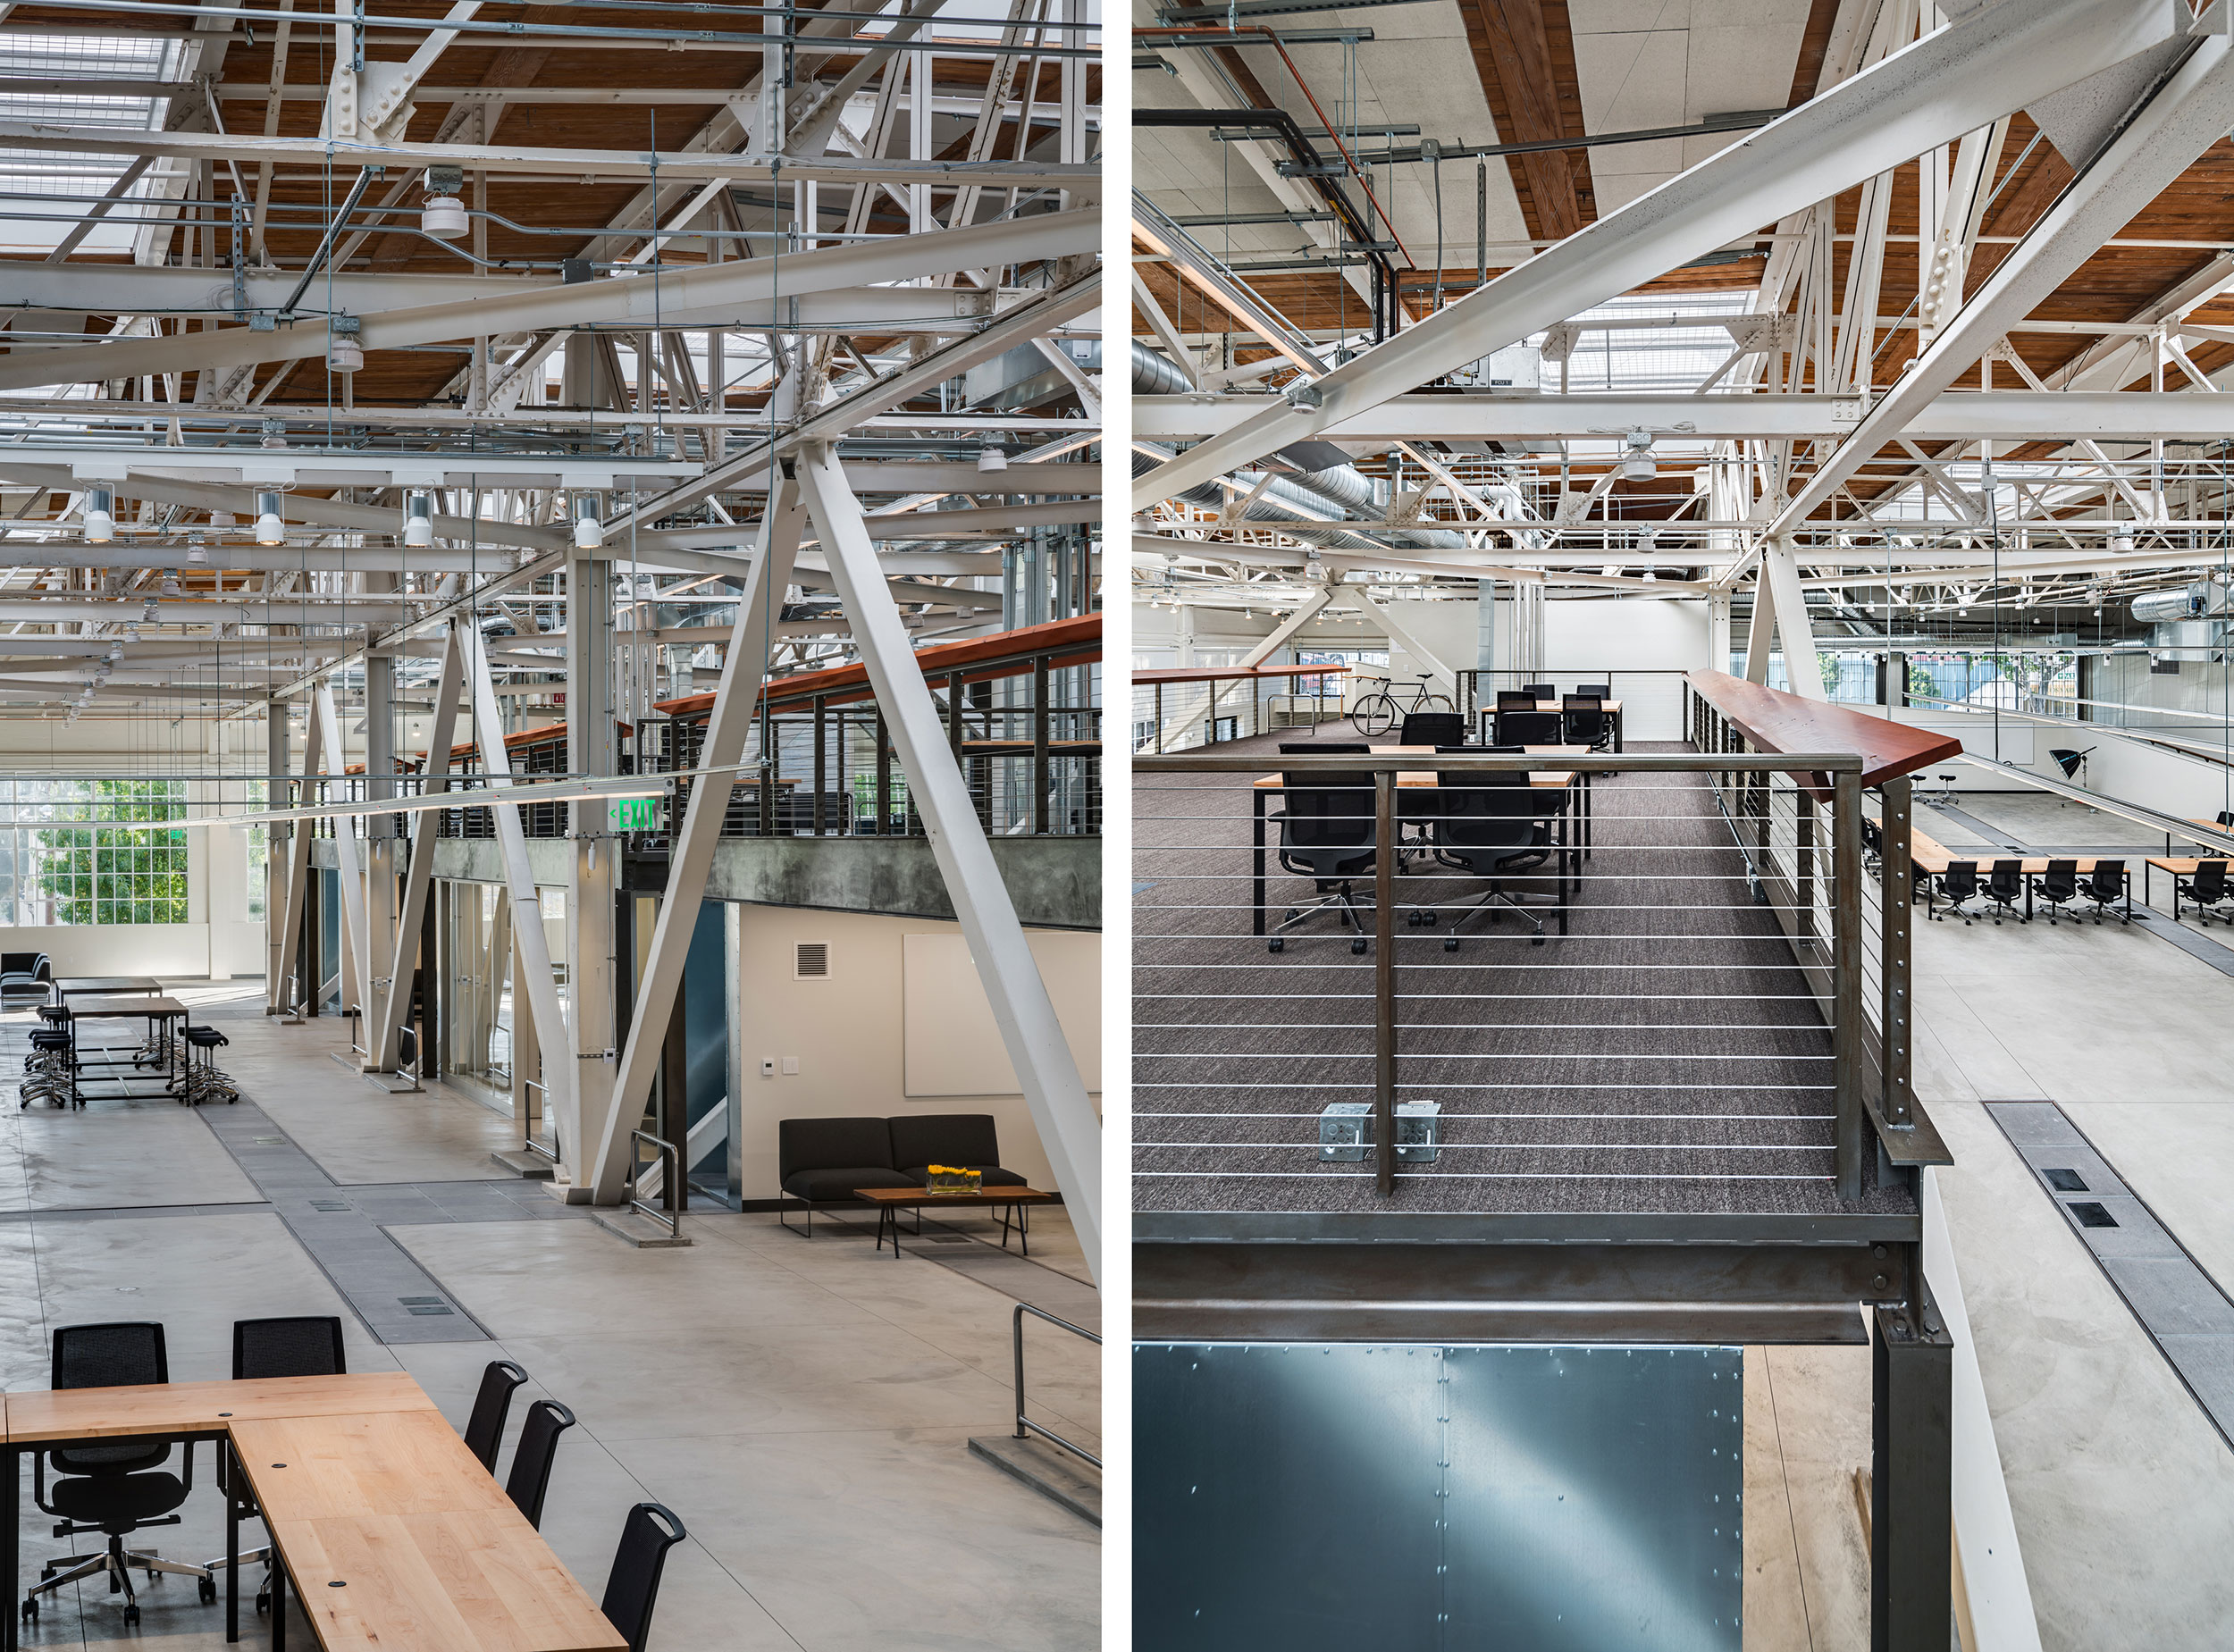 San Francisco Workplace, Office, Adaptive Reuse, Tech Company, Open Workspace, Flexible Office, Natural Light, Steel Details, Wood Ceiling, System Integration